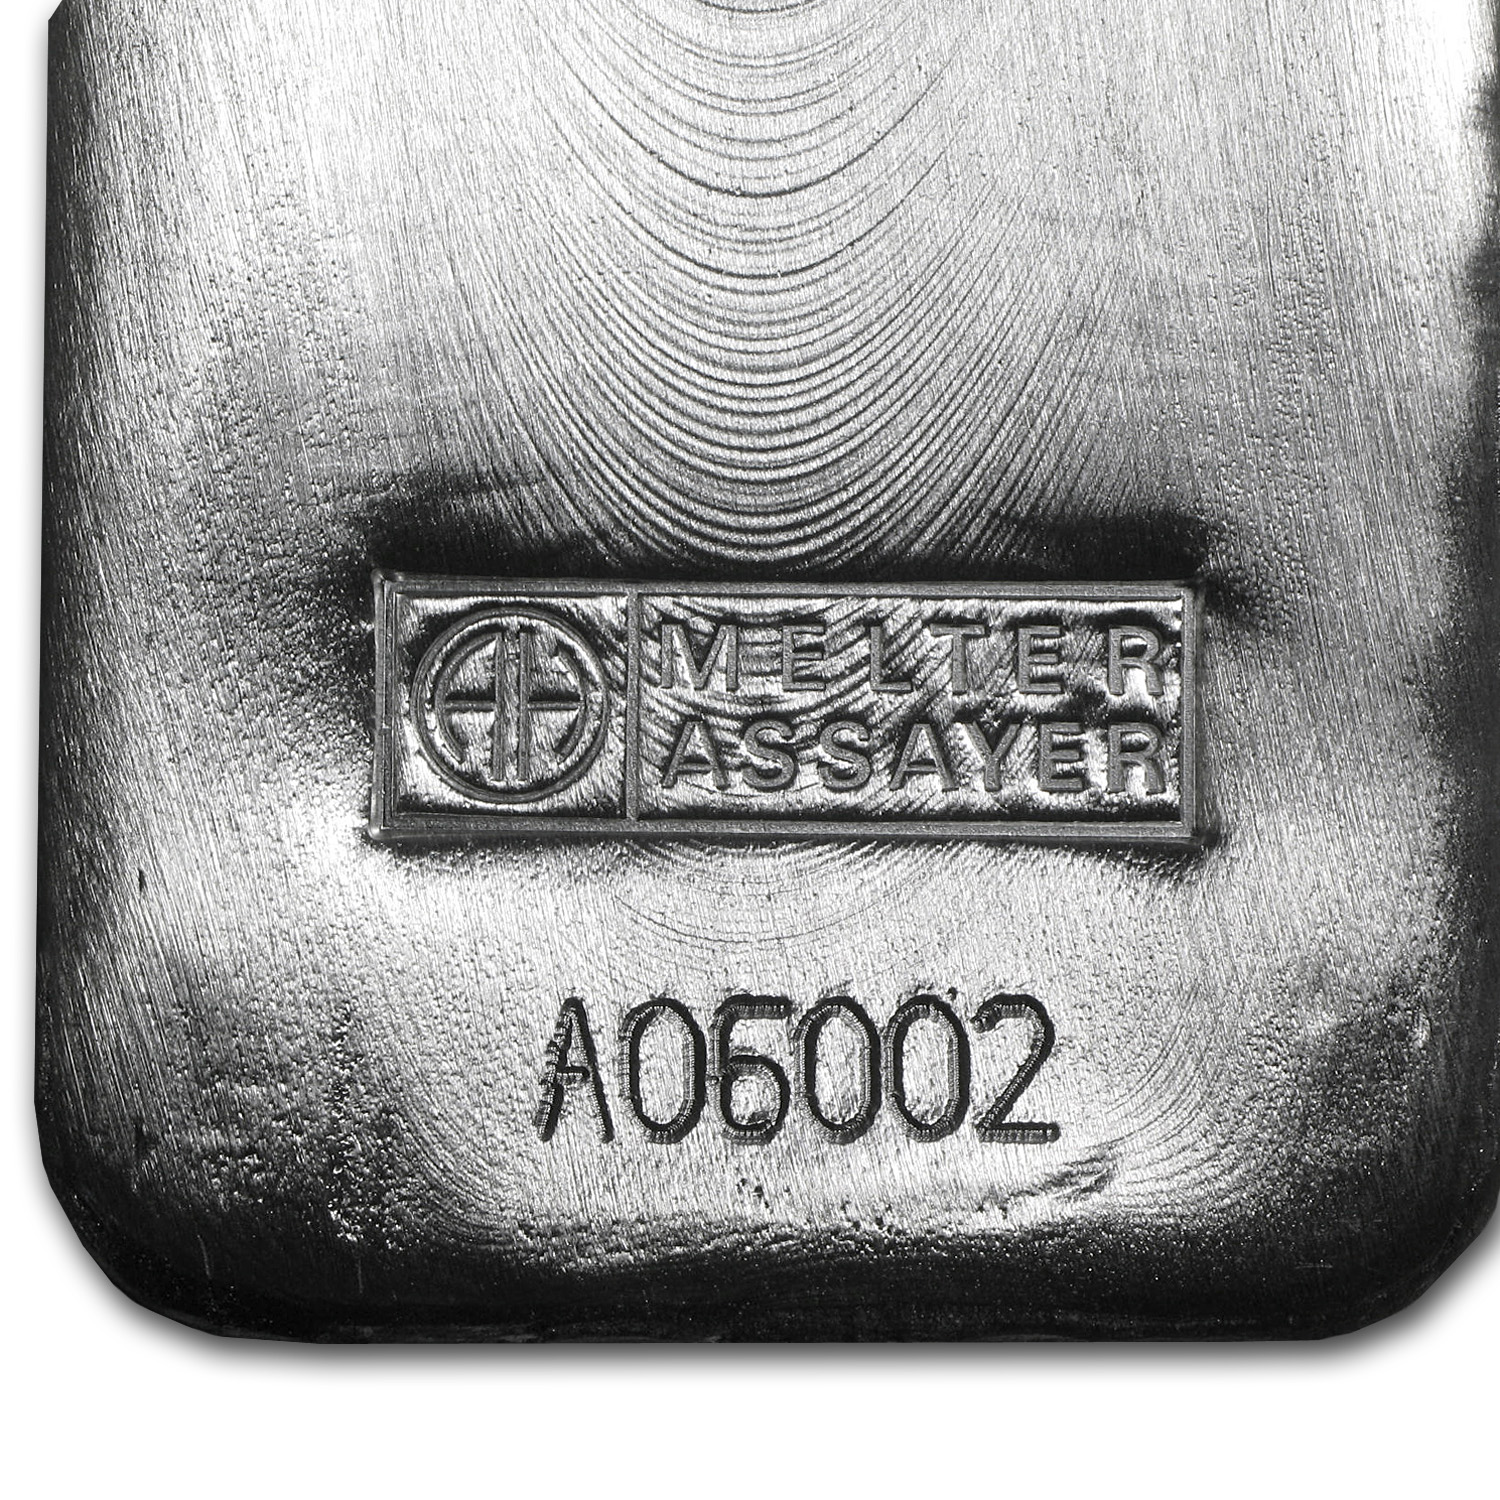 5000 gram Silver Bars - Argor/Heraeus (Poured)